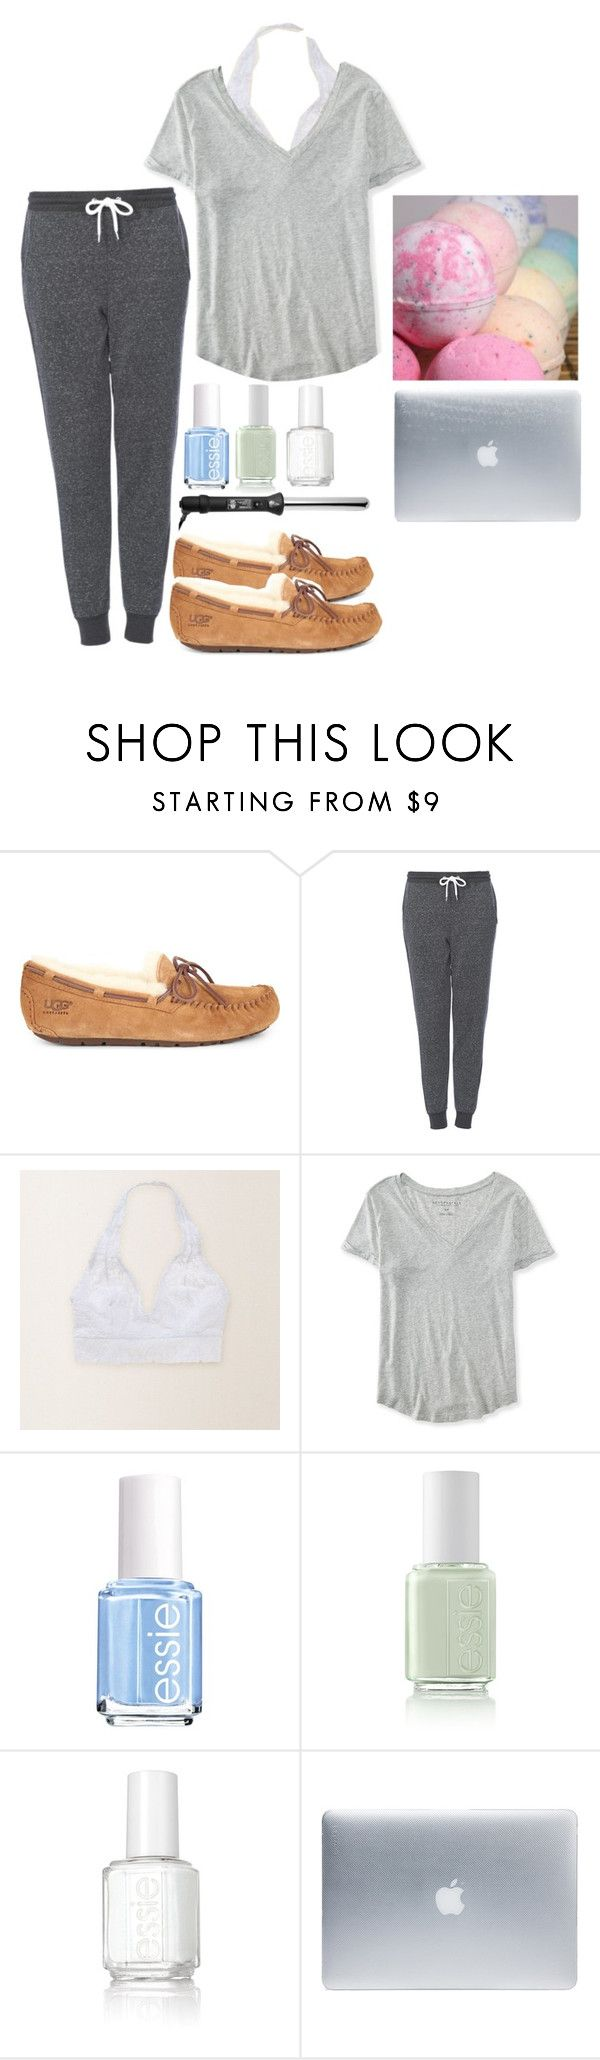 """Spa day tomorrow"" by emmaaagildea on Polyvore featuring UGG Australia, Topshop, Aerie, Aéropostale, Essie, Incase and Sephora Collection"